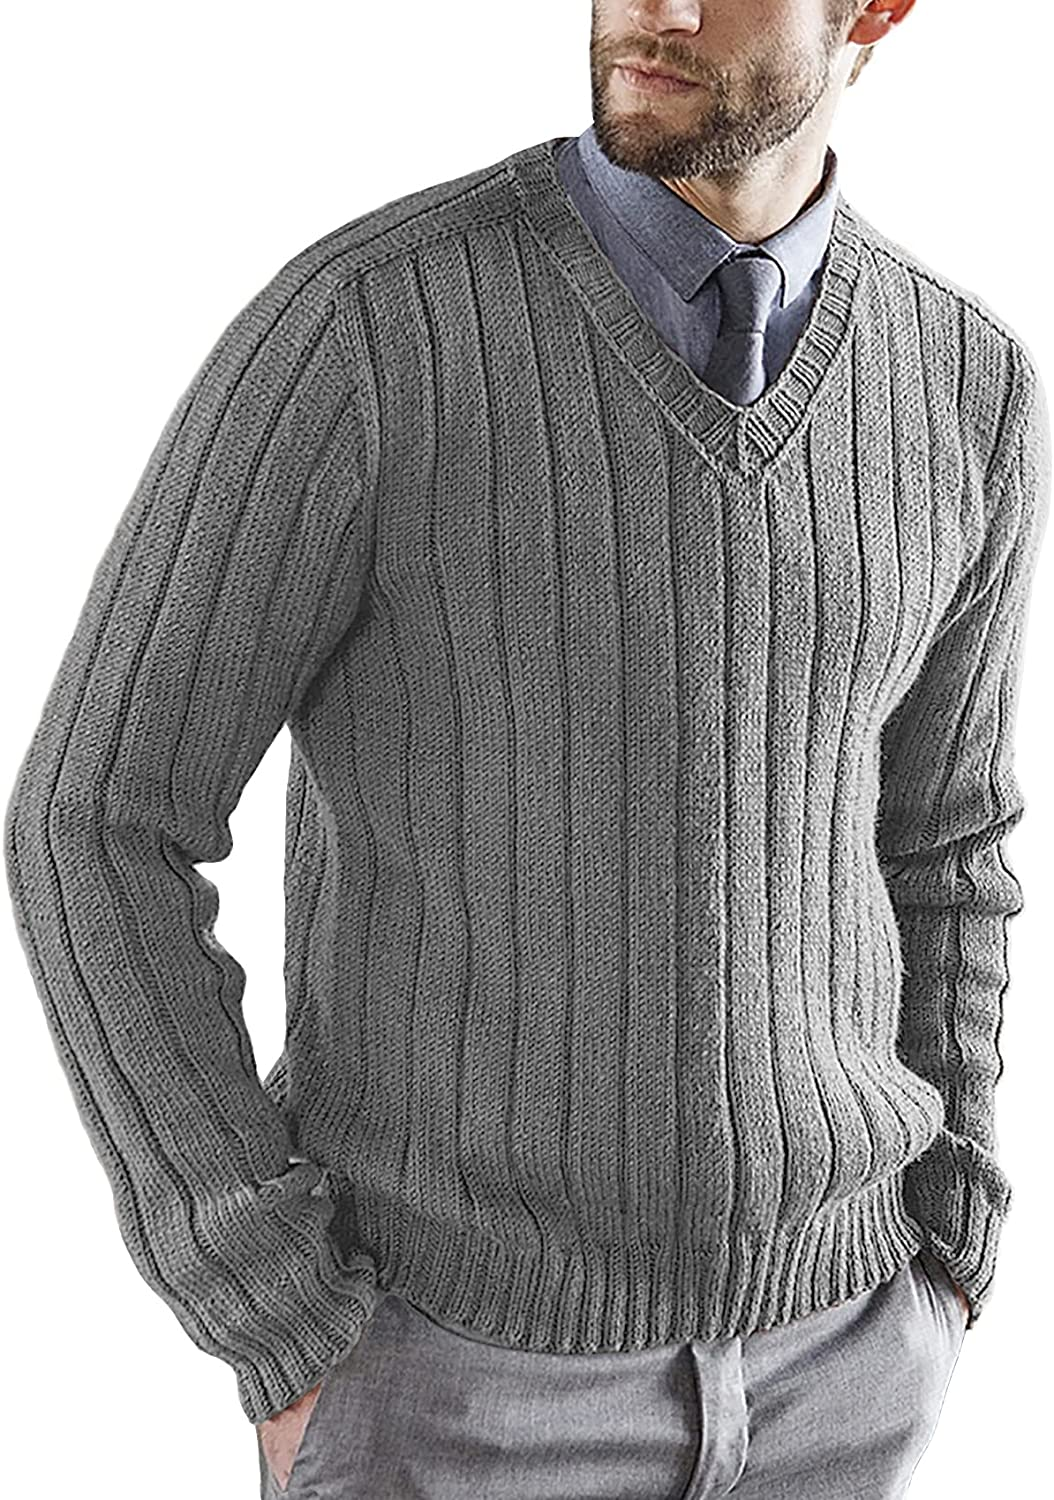 Mens V-Neck Pullover Sweater Long Sleeves Regular Fit Cable Knit Stylish Knitwear Cotton Sweaters